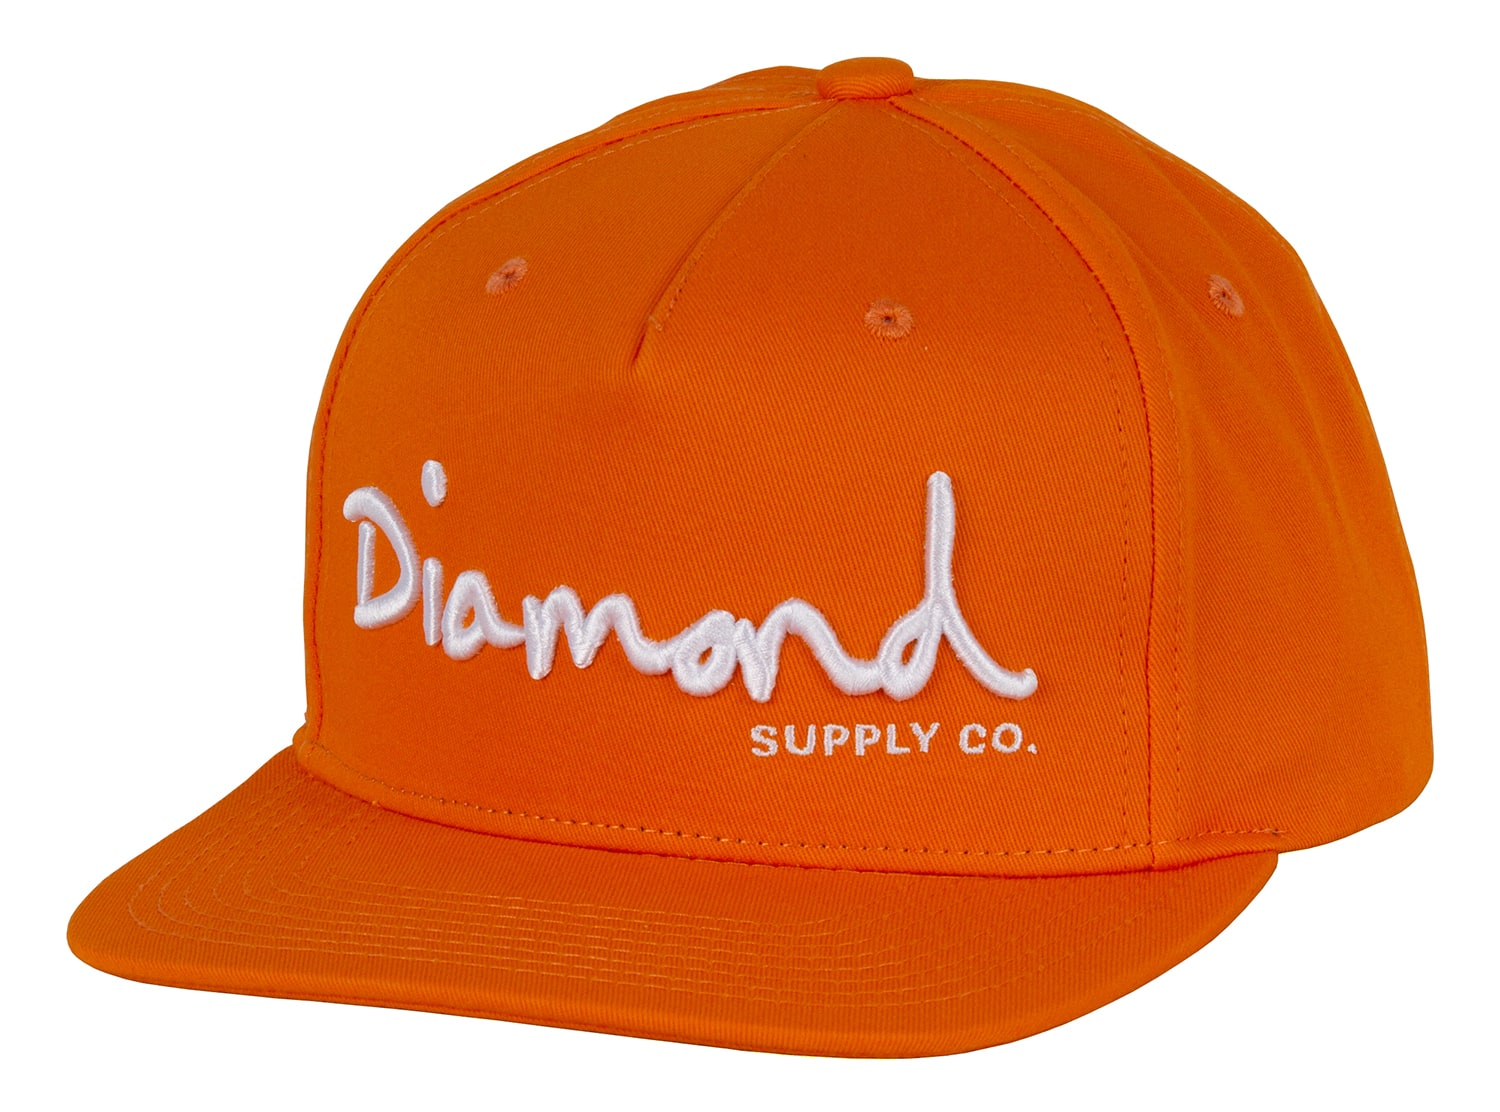 0cf754ebb7d Diamond Supply Co OG Script Snapback Cap - Orange